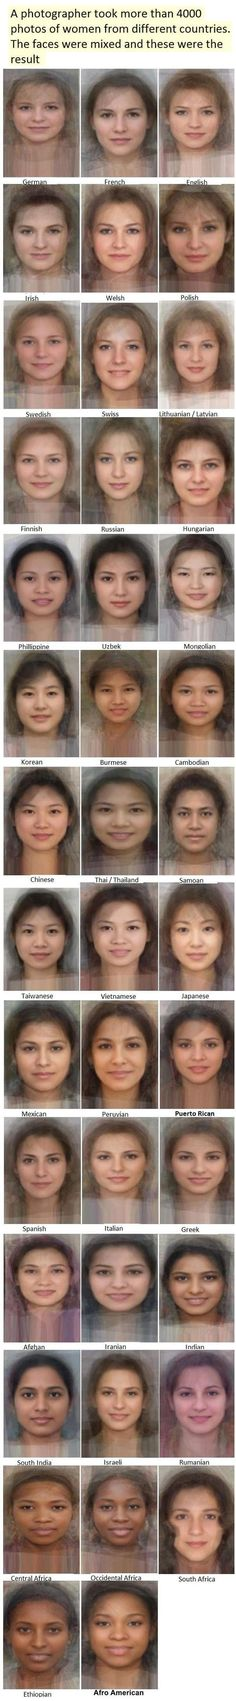 The average faces of women from around the world.